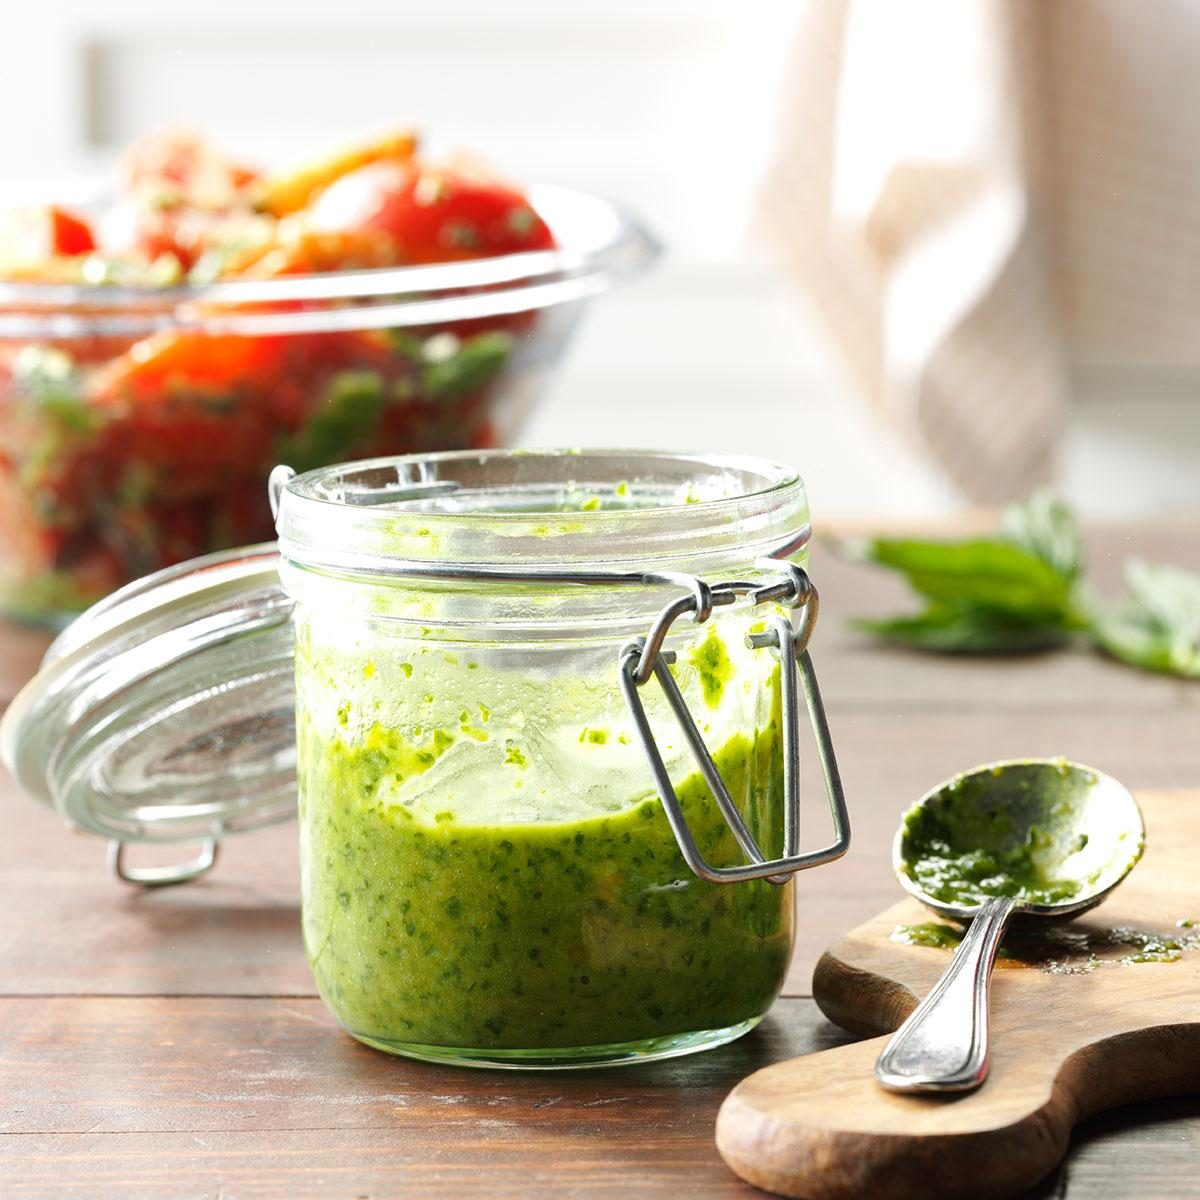 Basil and Parsley Pesto